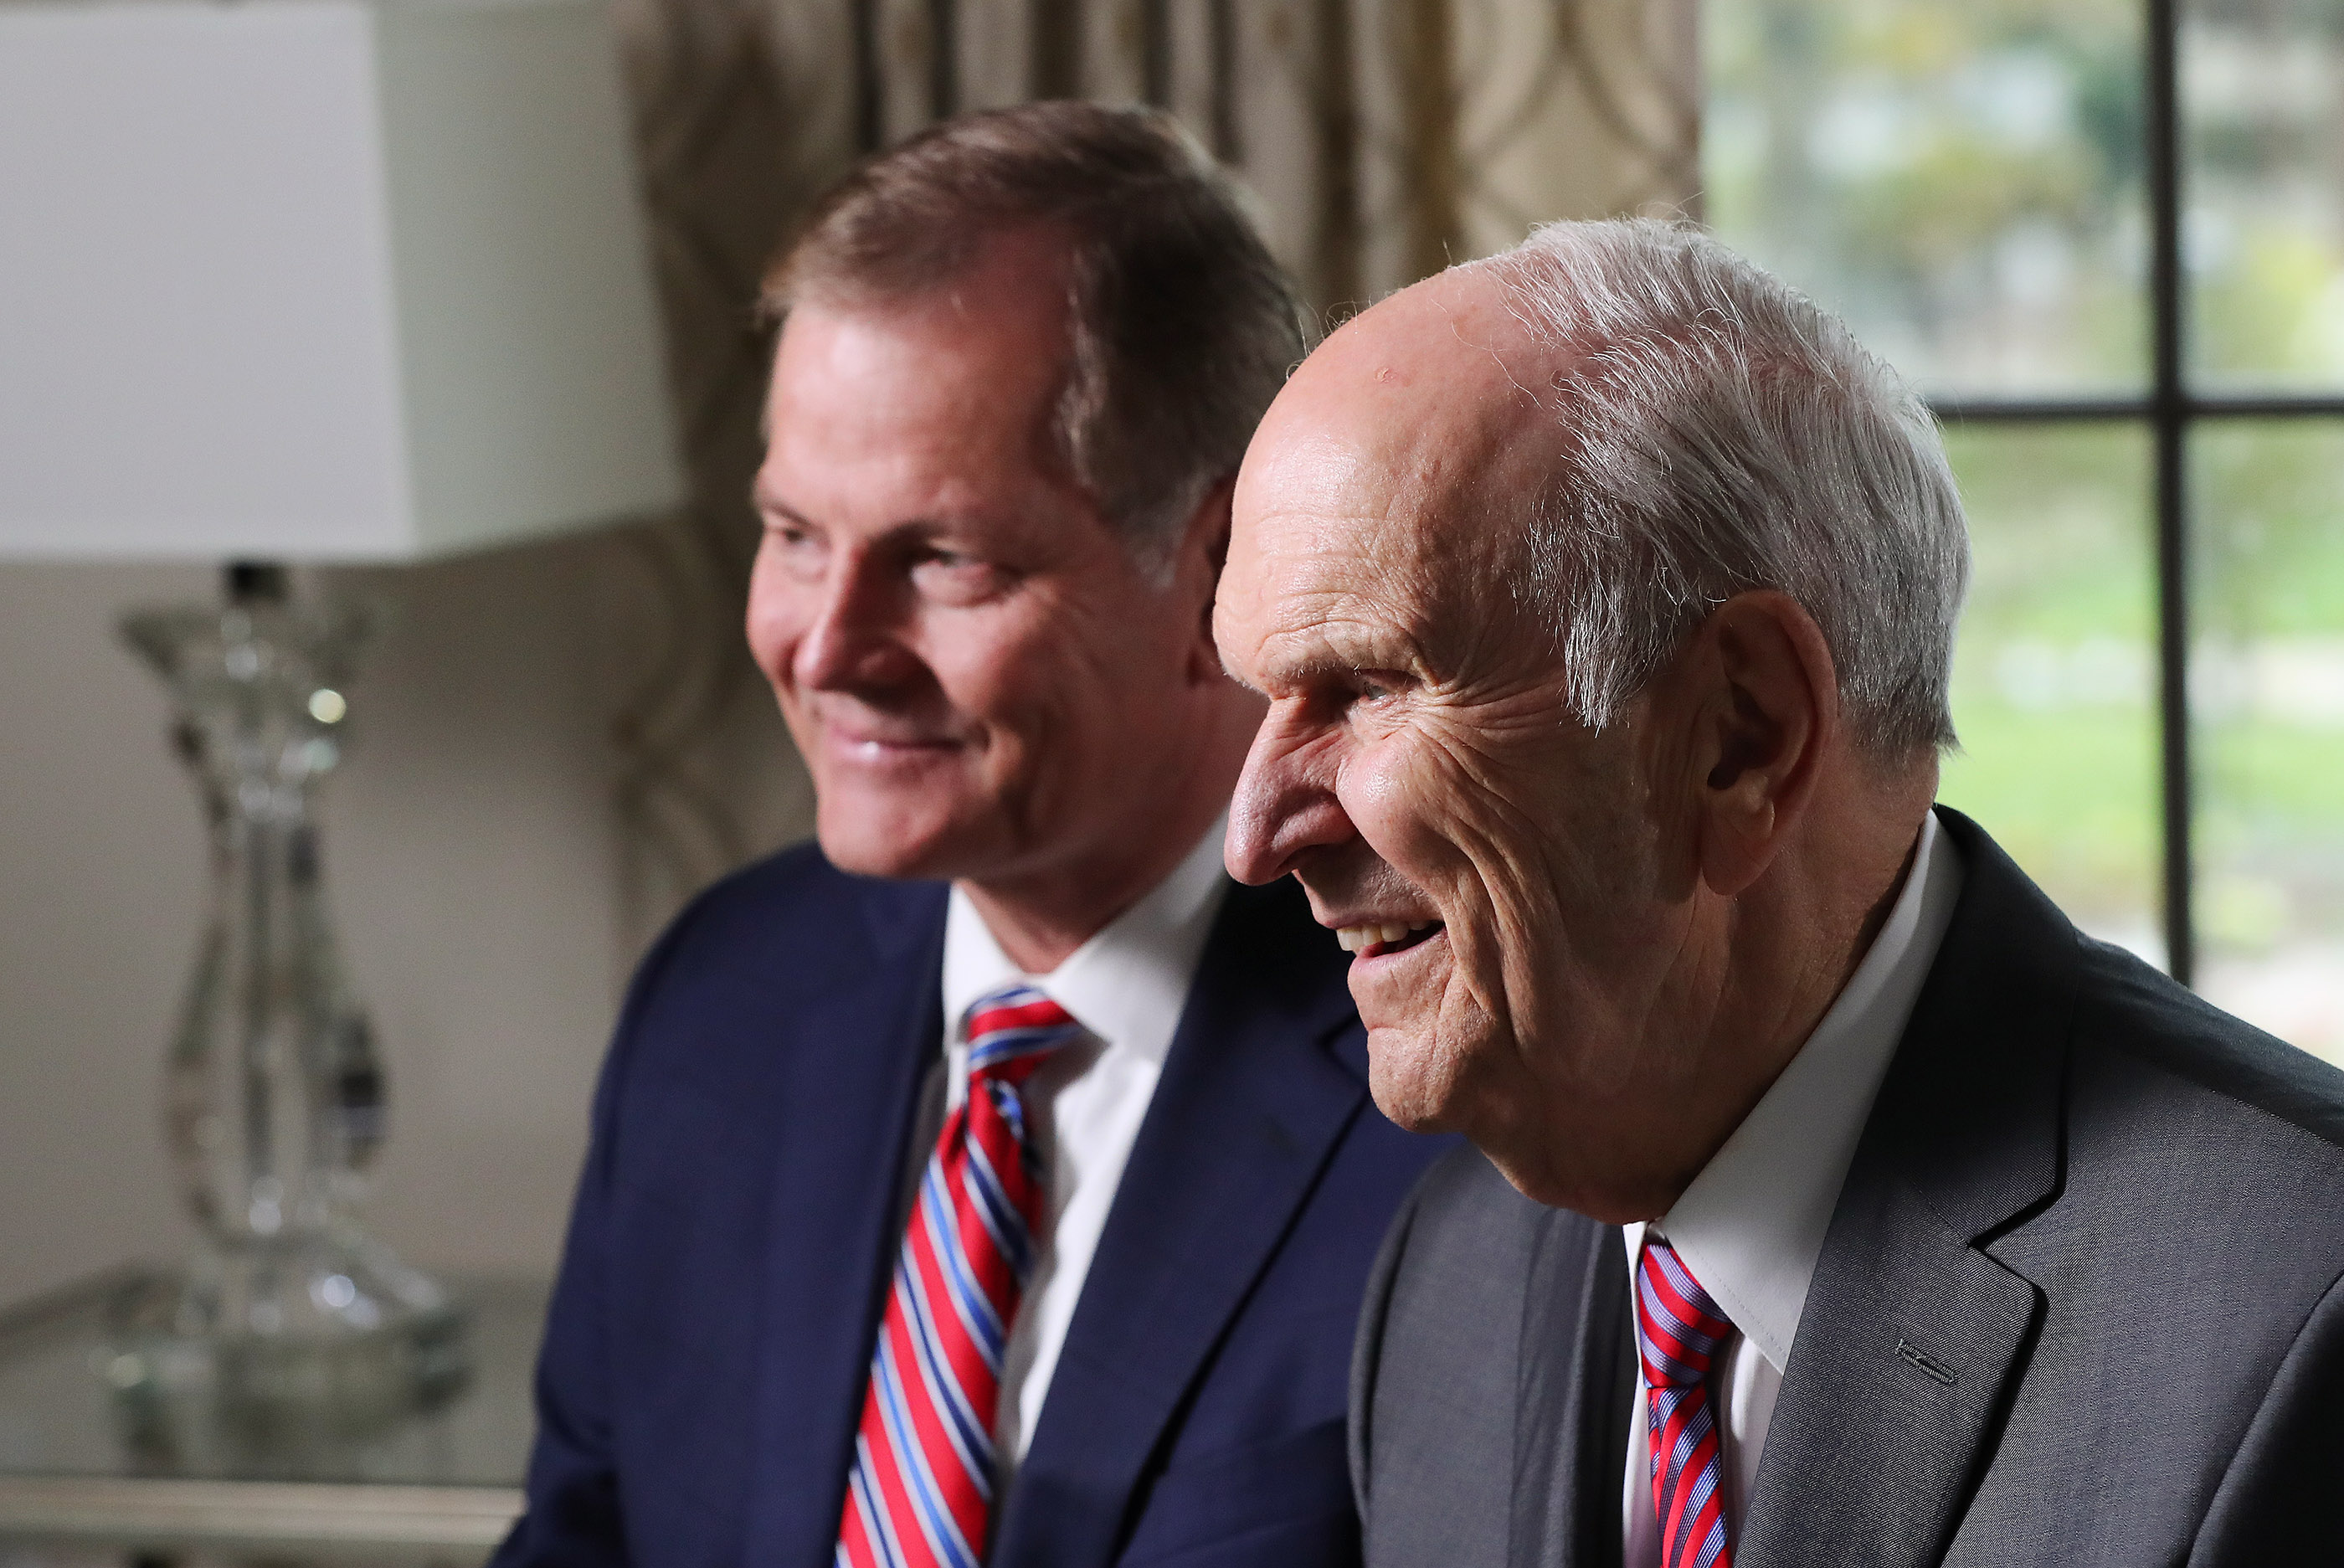 President Russell M. Nelson of The Church of Jesus Christ of Latter-day Saints, right, and Elder Gary E. Stevenson of the Quorum of the Twelve Apostles, left, speak during a news conference after the dedication of the Concepcion Chile Temple on Sunday, Oct. 28, 2018, in Concepcion, Chile.